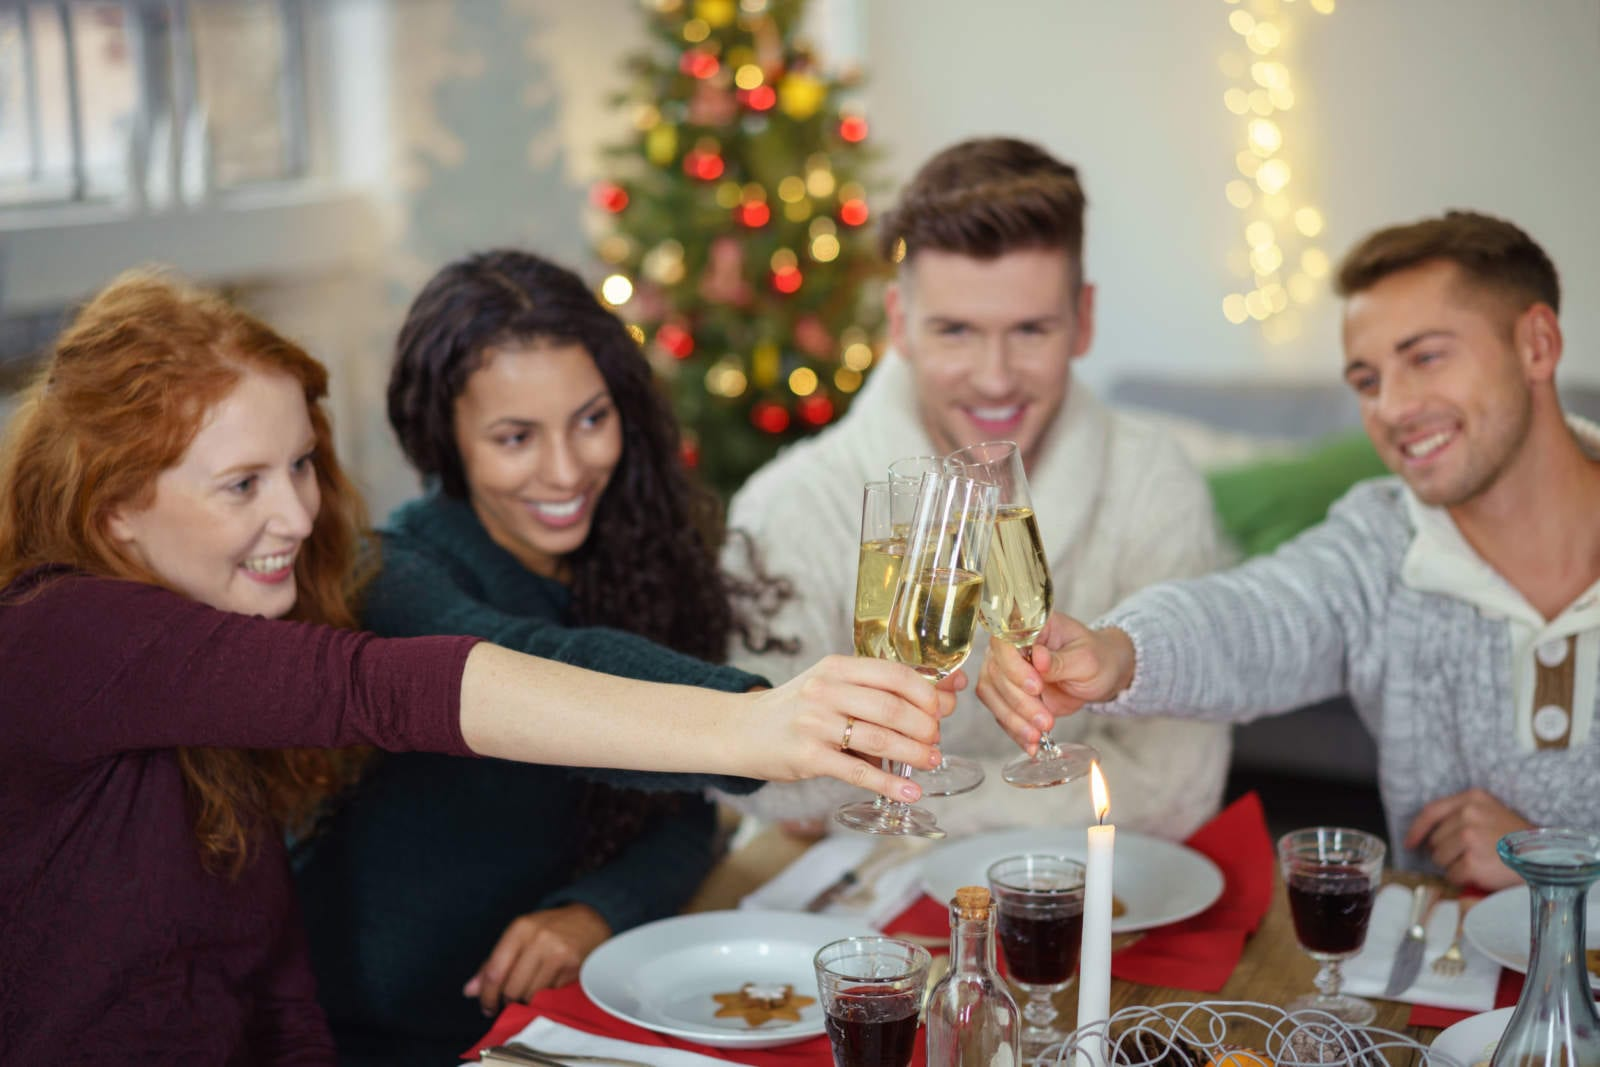 The Office Holiday Party: How to Survive and Thrive